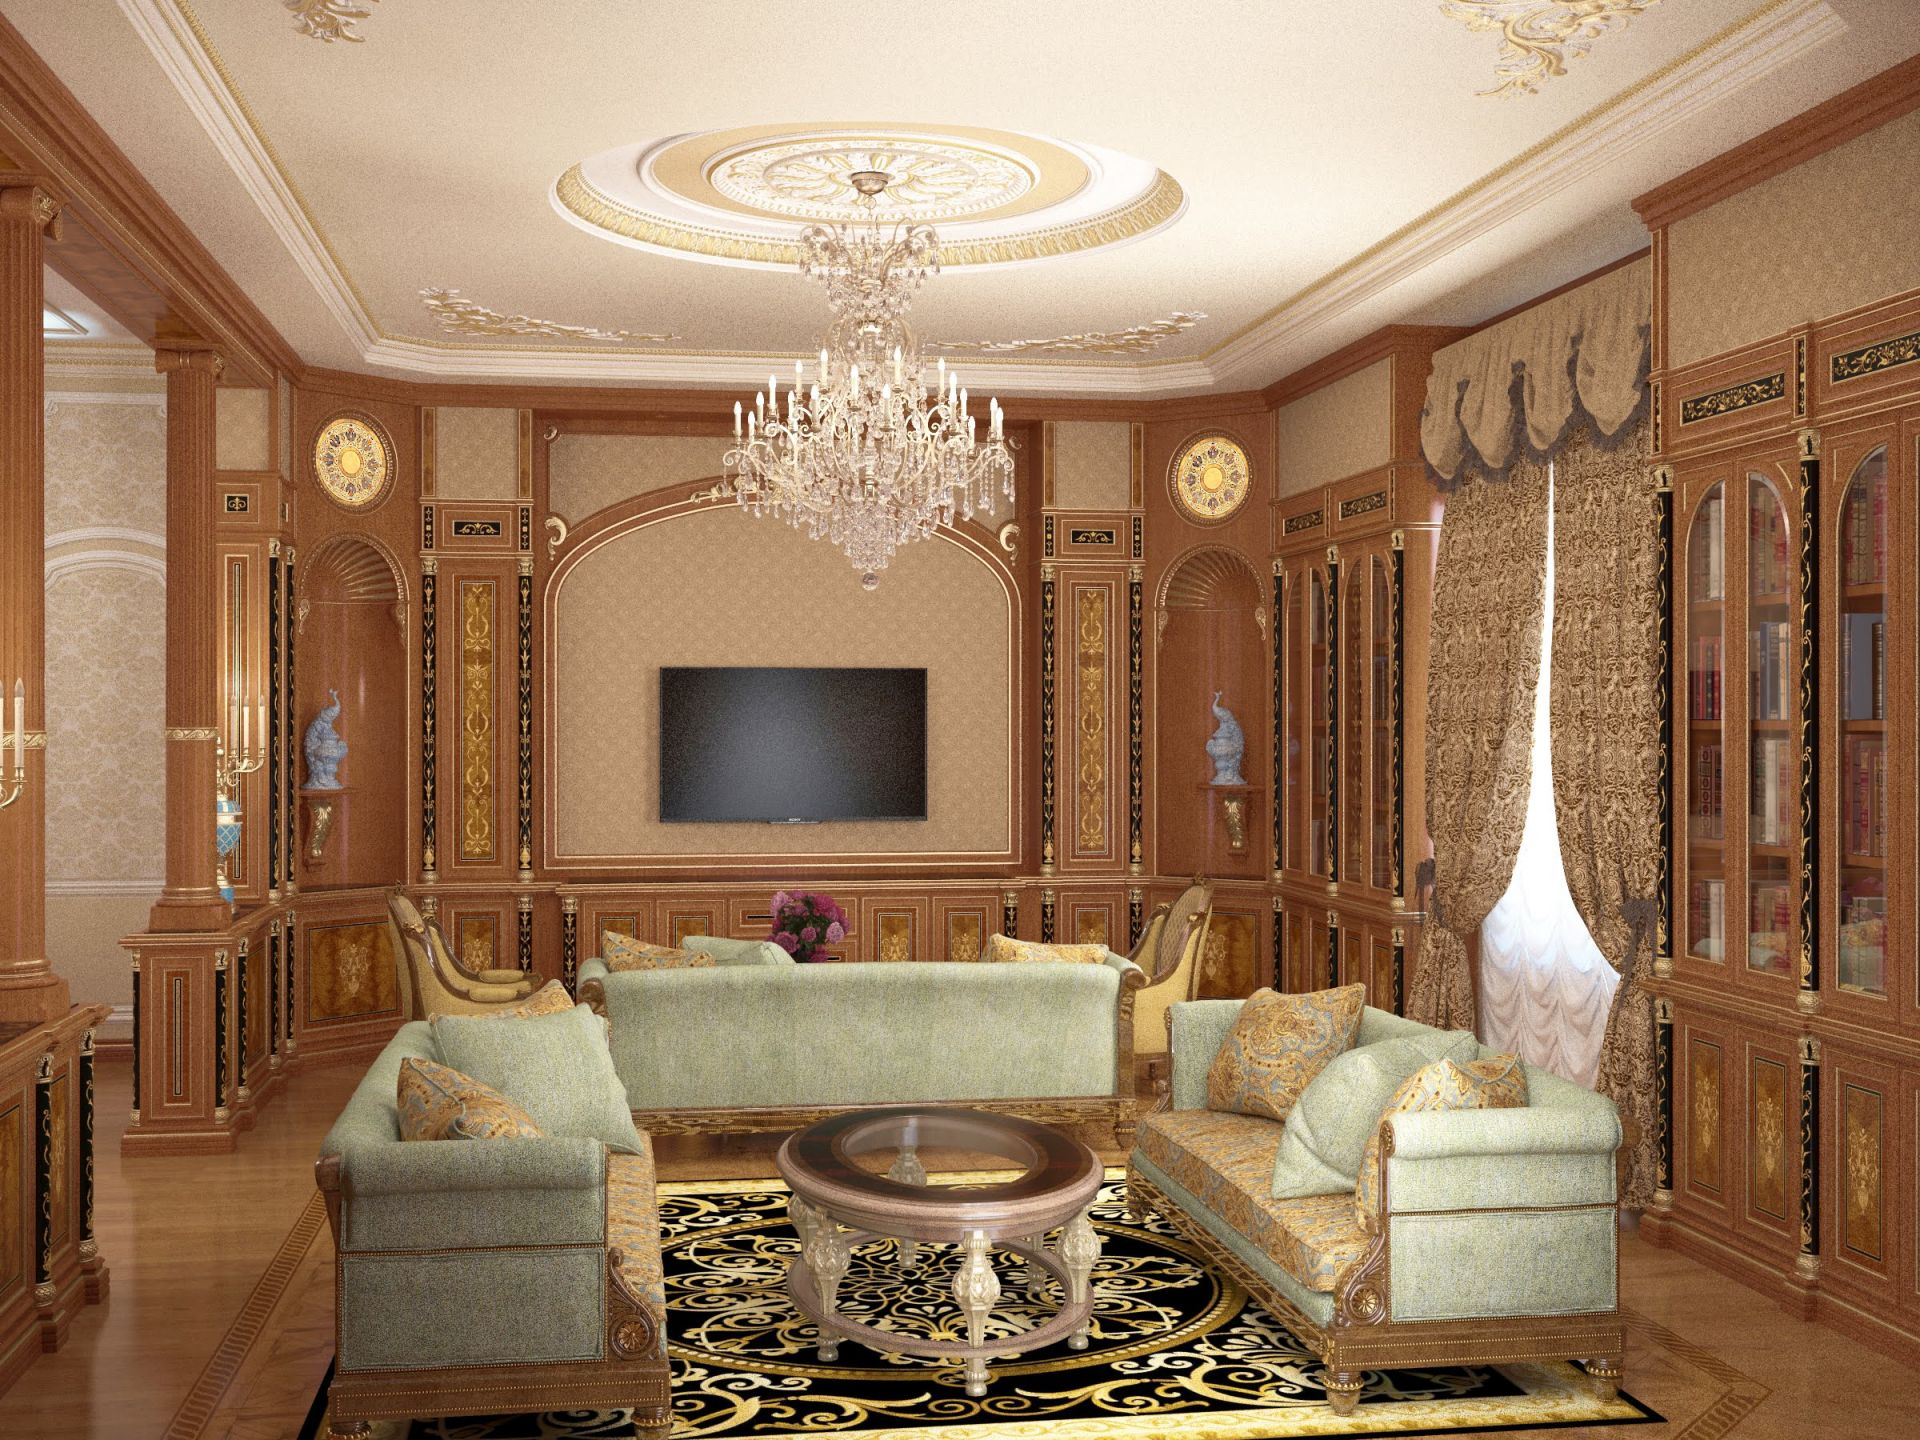 Living room in palace style